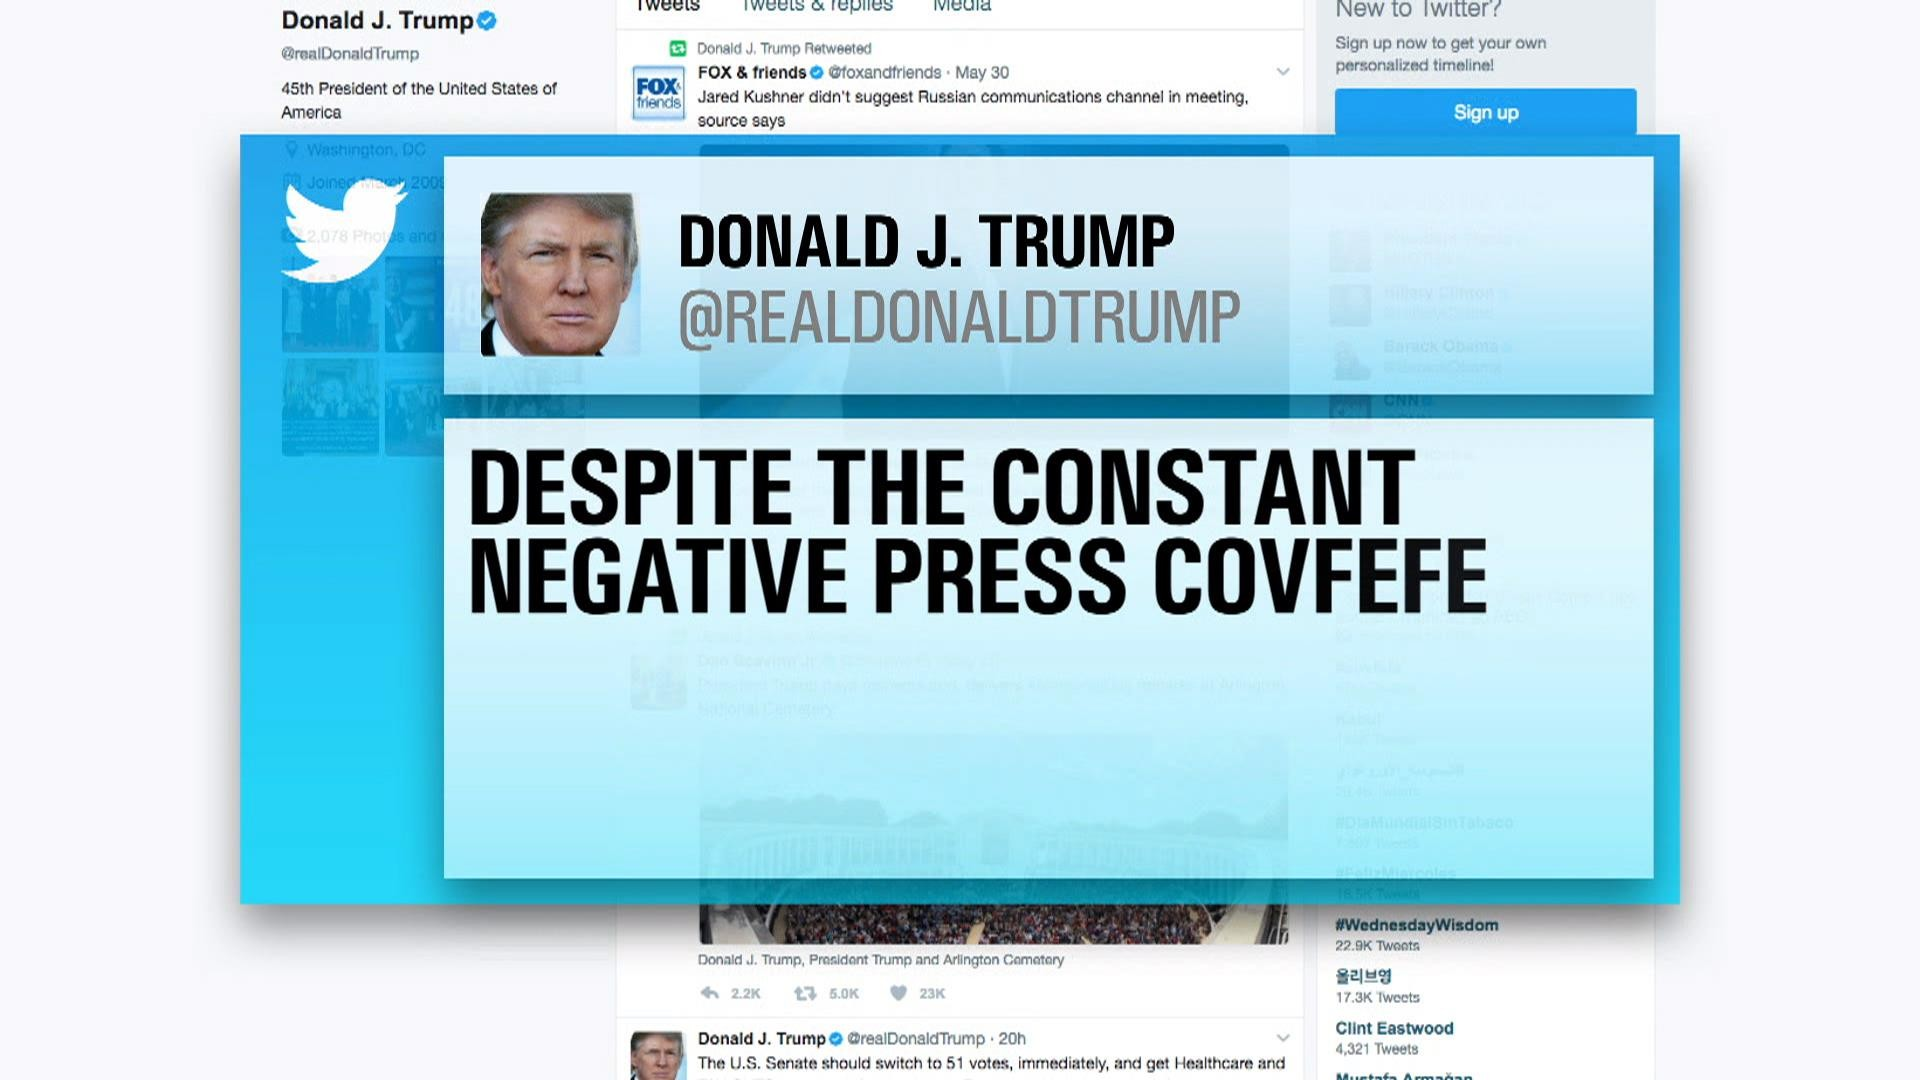 1920x1080 Trump's mystery 'covfefe' tweet sparks confusion: What does it mean? - NBC  News